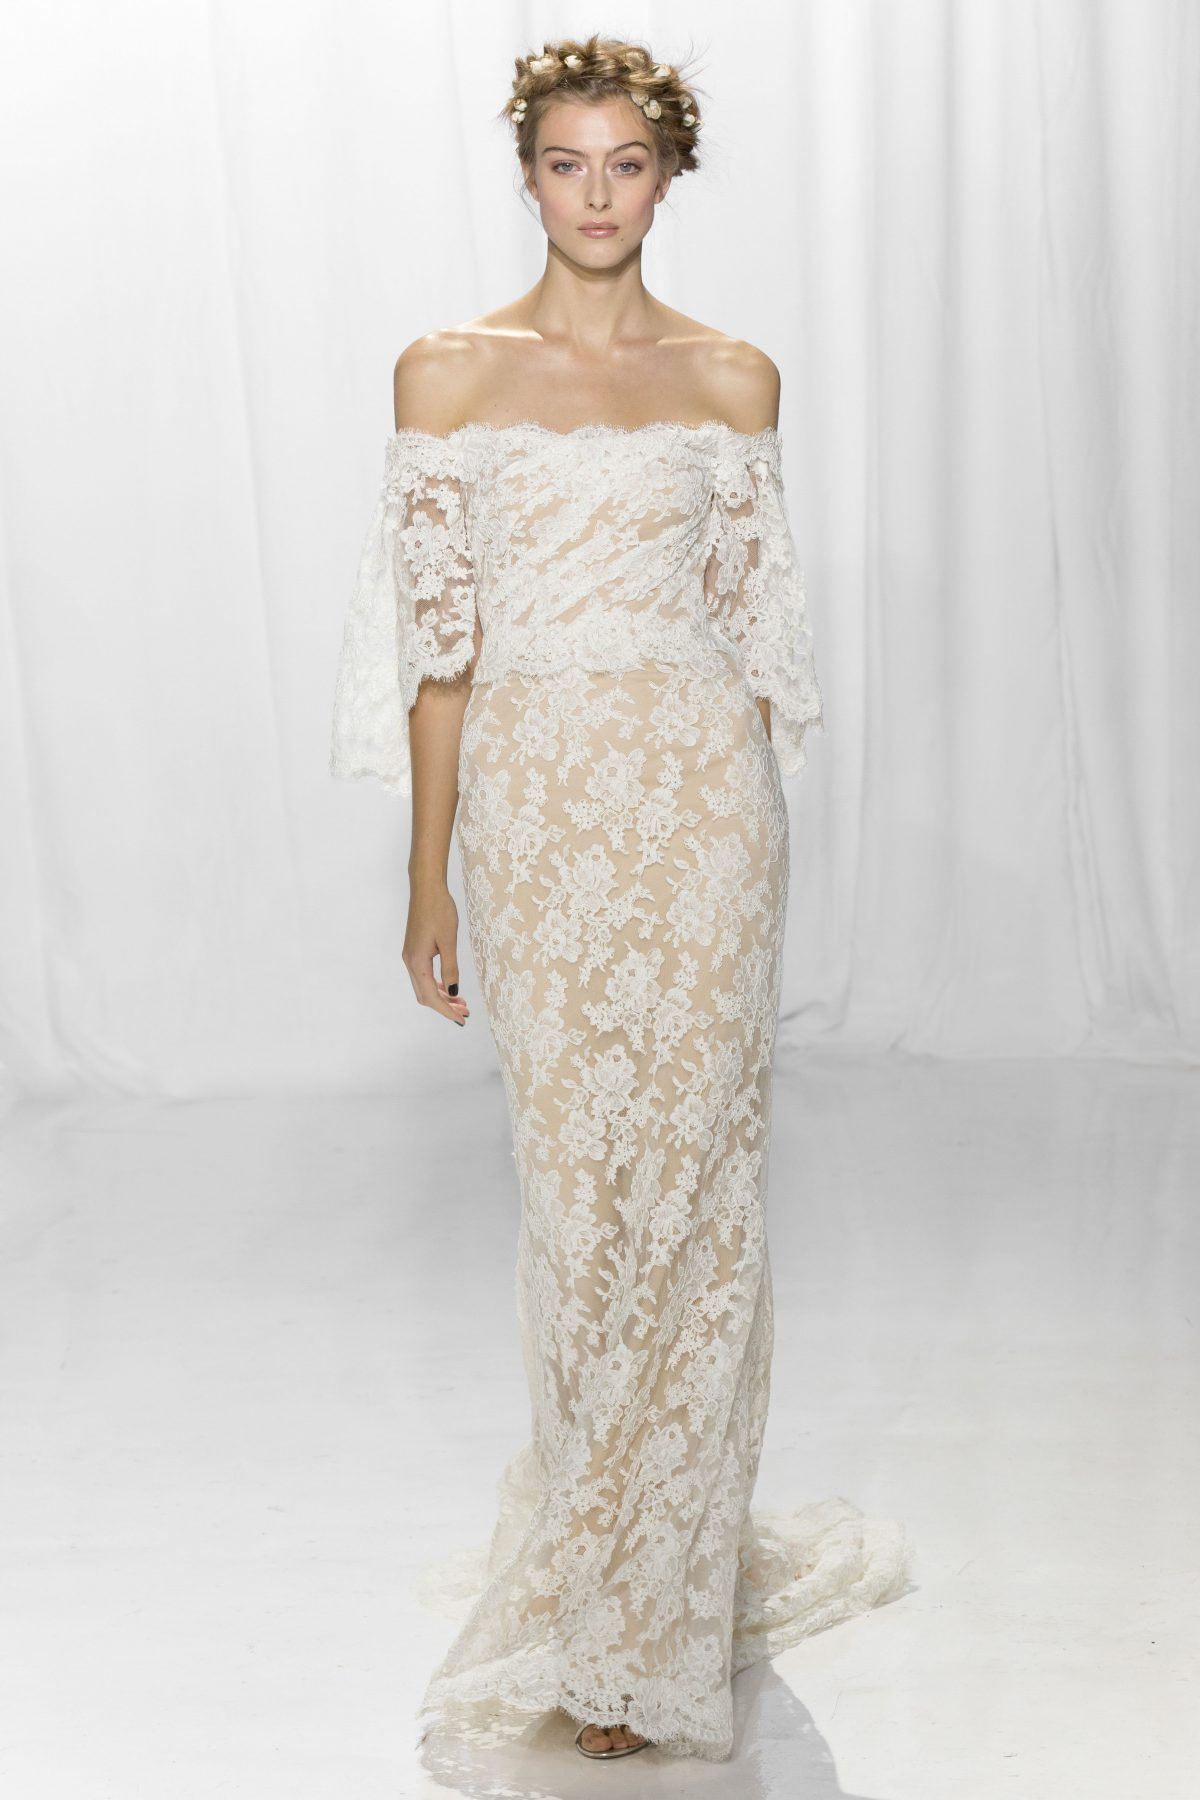 Off the shoulder lace sheath bohemian wedding dress reem acra